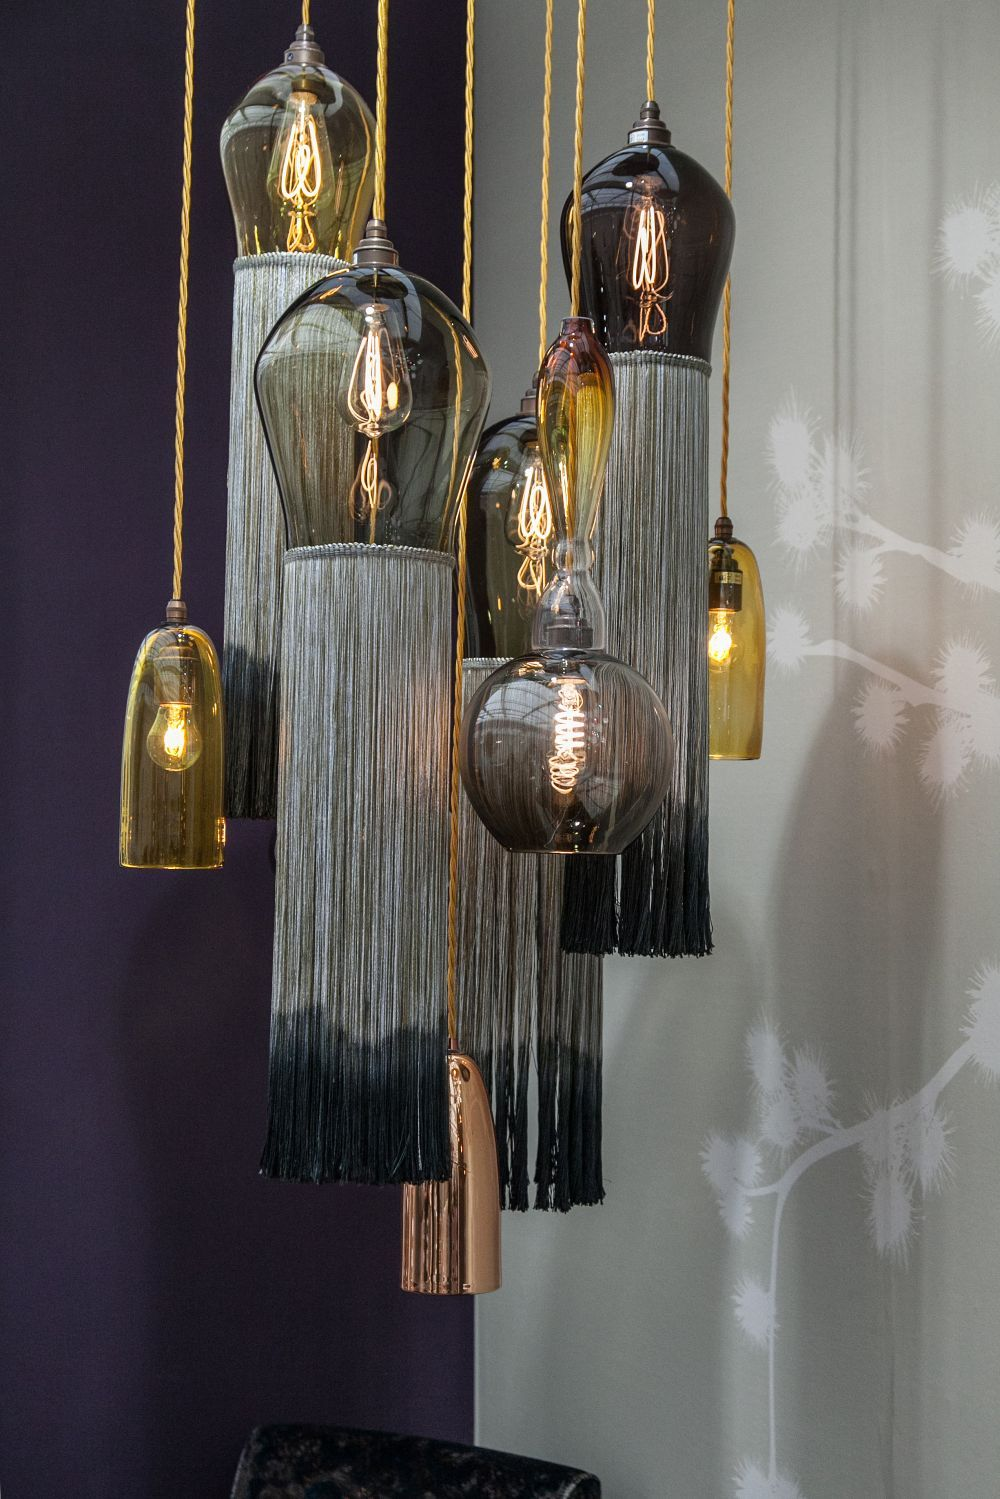 London S Decorex Focuses On Luxury Designs For The Home Lighting Inspiration Light Decorations Lamp Design